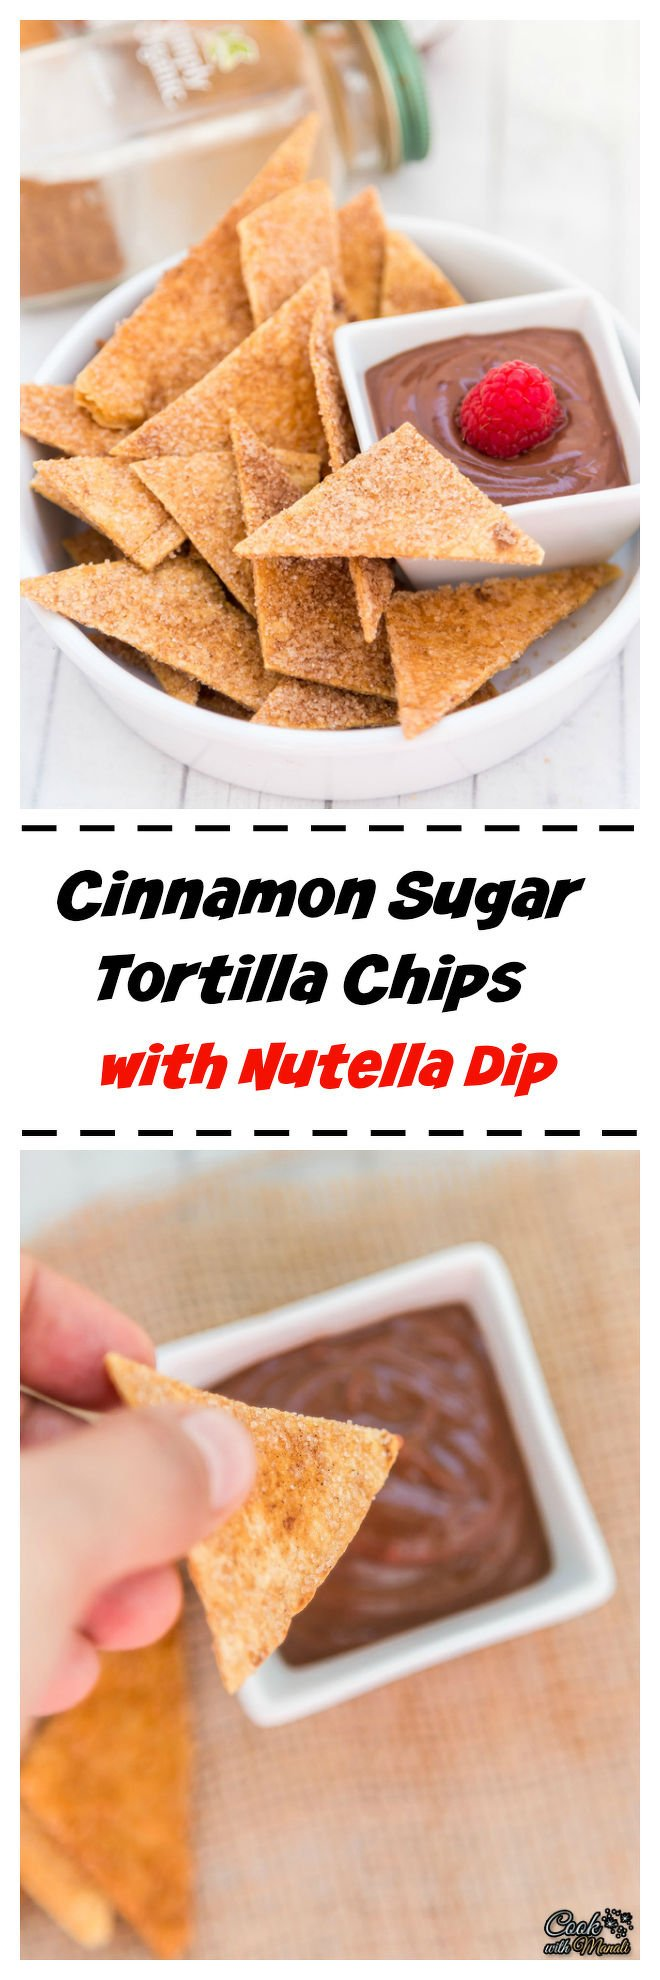 Cinnamon Sugar Tortilla Chips with Nutella Dip Collage-nocwm